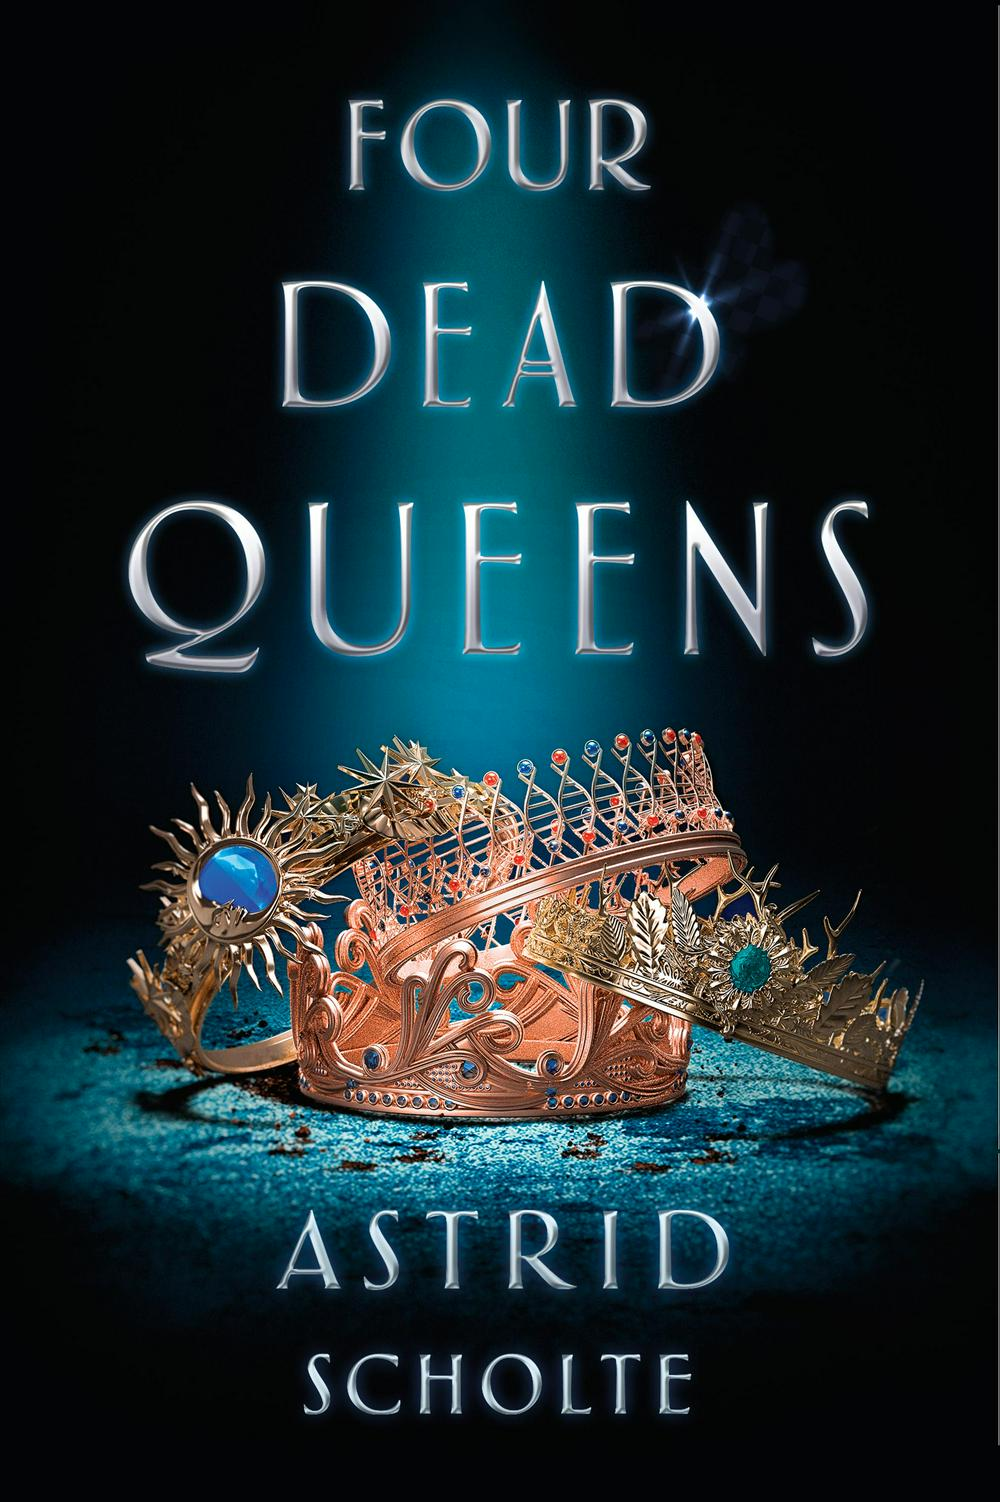 Four Dead Queens by Astrid Scholte, ISBN: 9780525513926